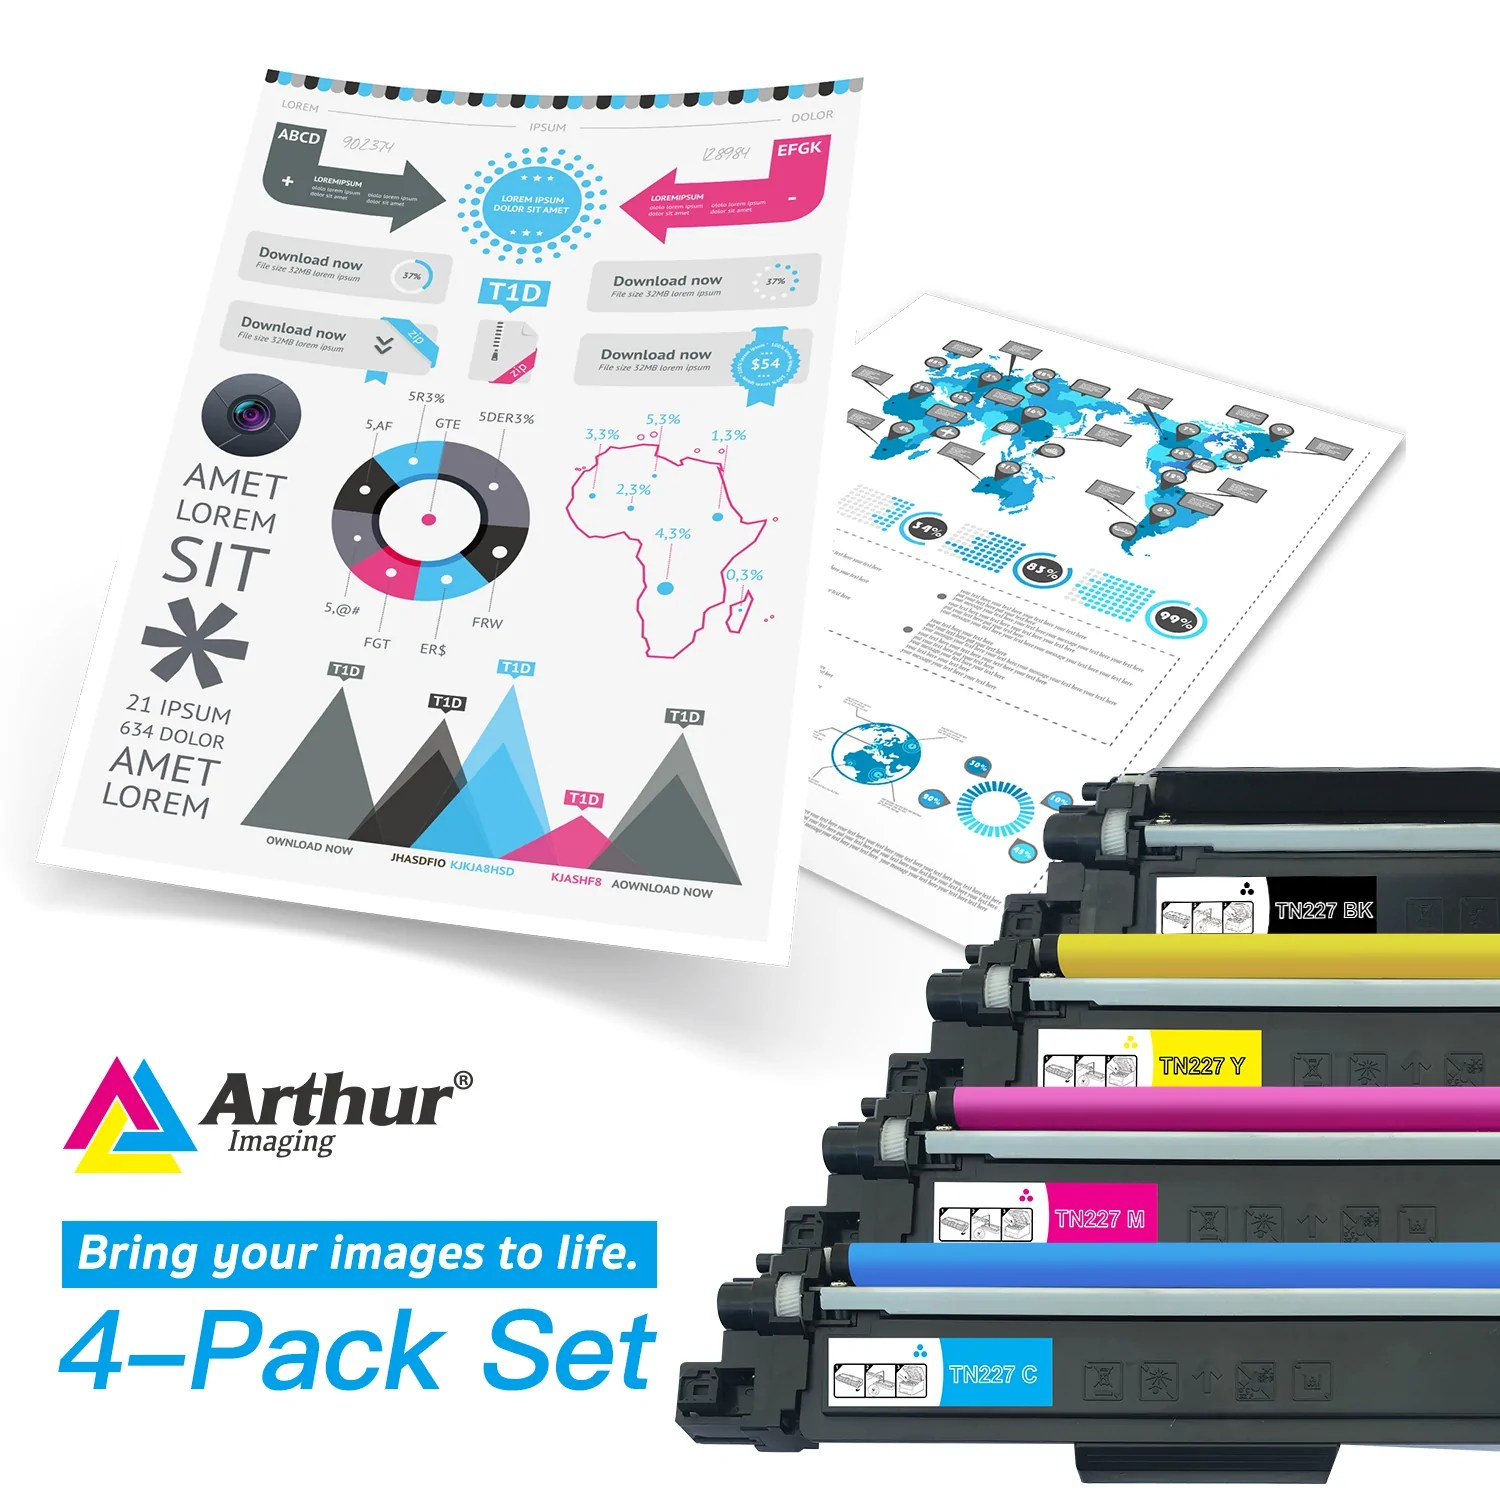 hight resolution of  arthur imaging compatible toner cartridge replacement for brother tn223 tn227 1 black 1 cyan